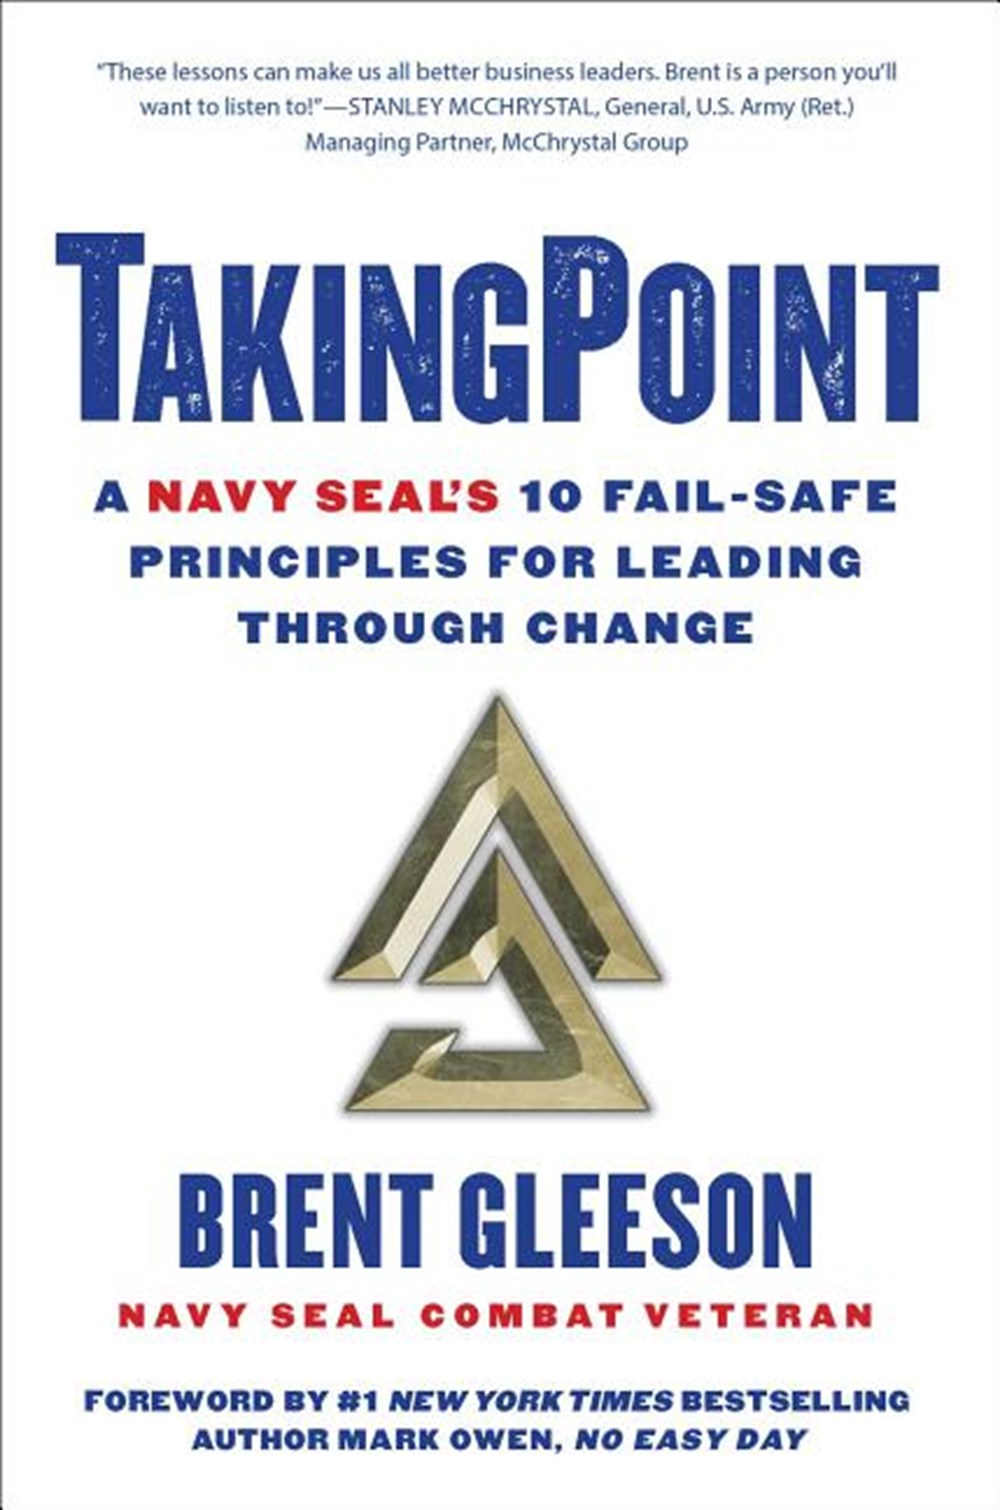 Takingpoint A Navy Seal's 10 Fail Safe Principles for Leading Through Change